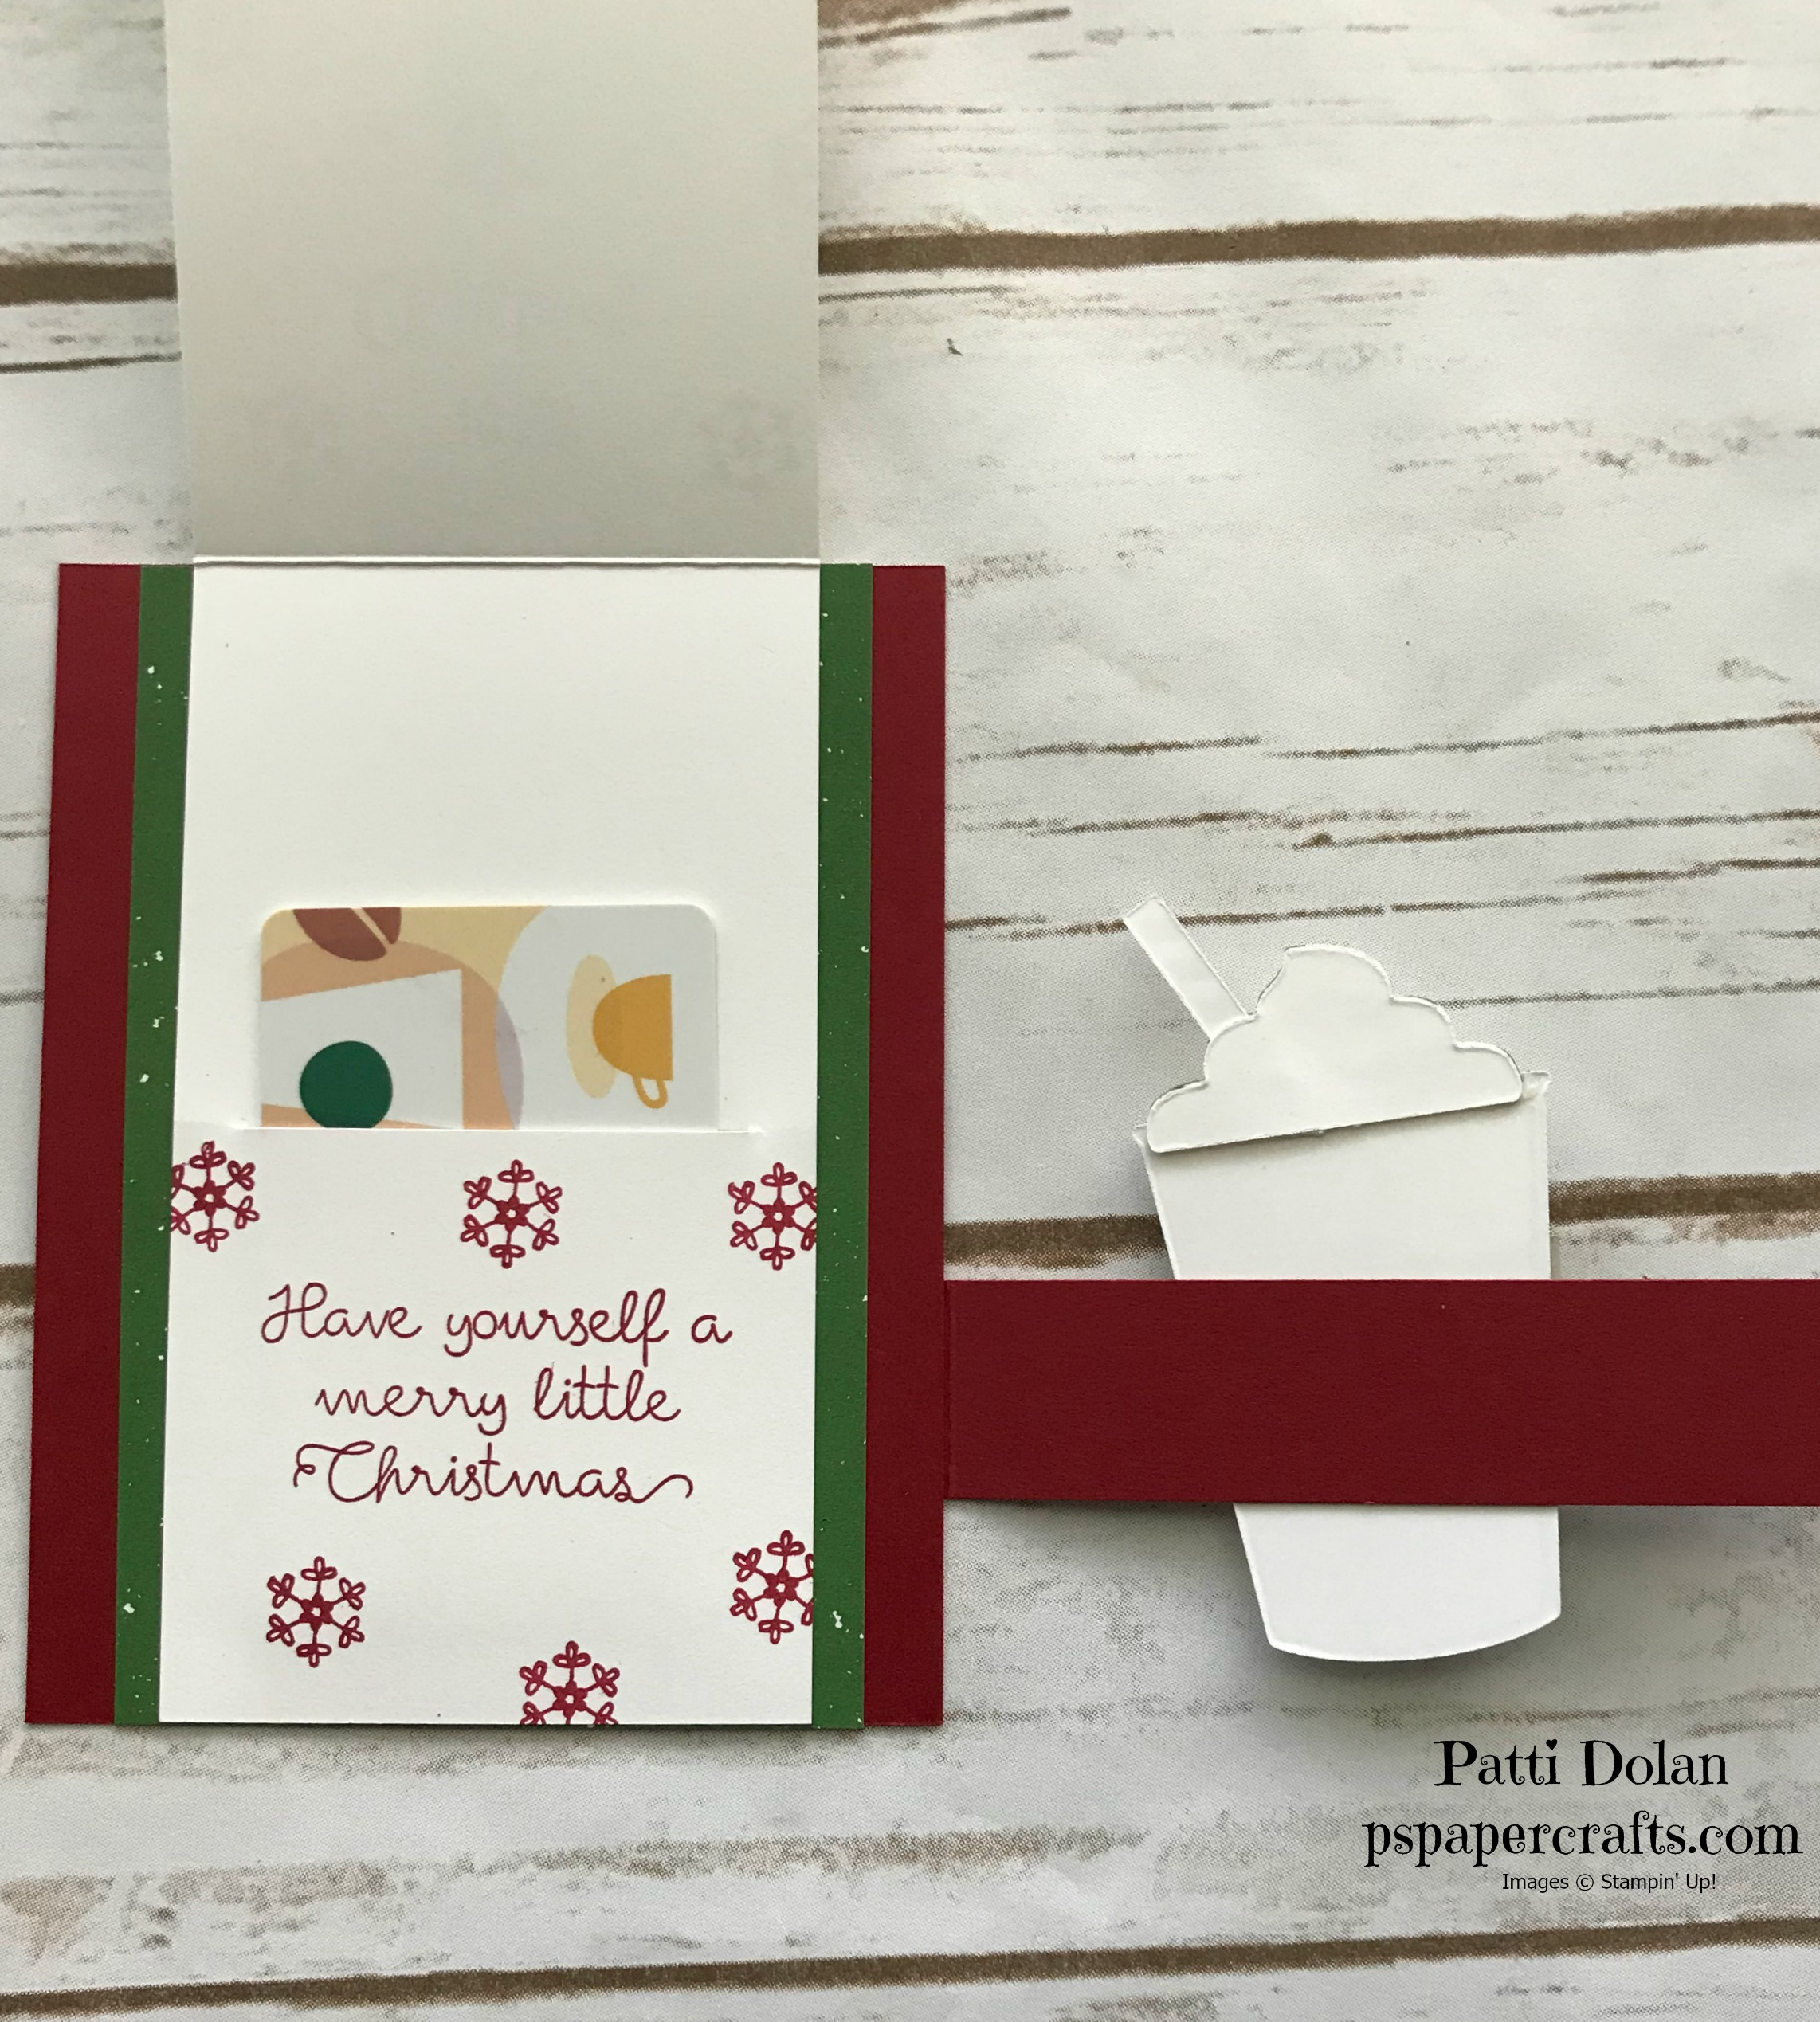 Merry Cafe Christmas Card with Gift Card Holder Inside.jpg